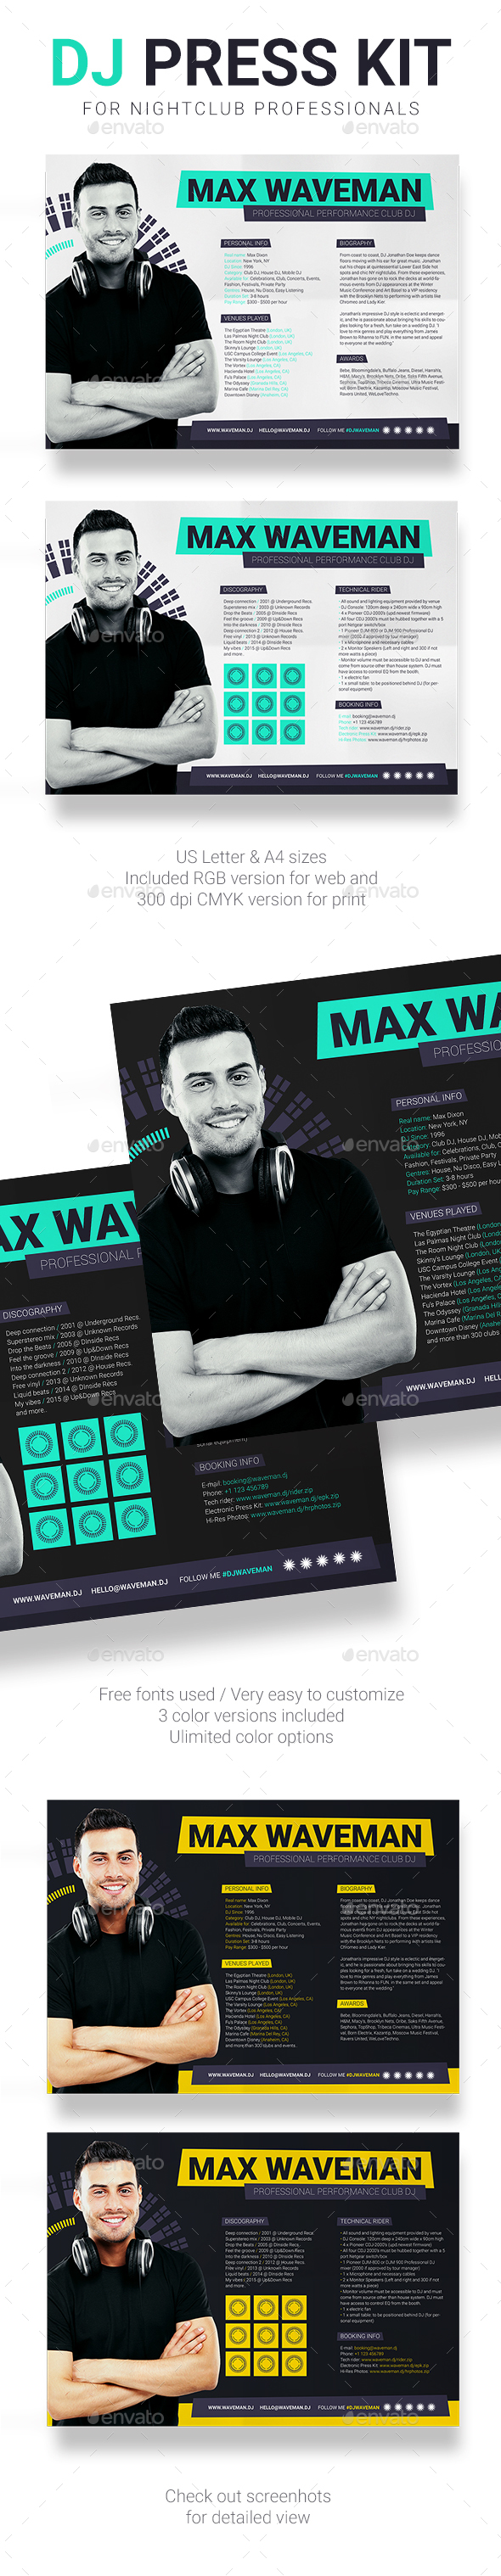 ProDJ - DJ Press Kit / Rider / Resume PSD Template - Resumes Stationery